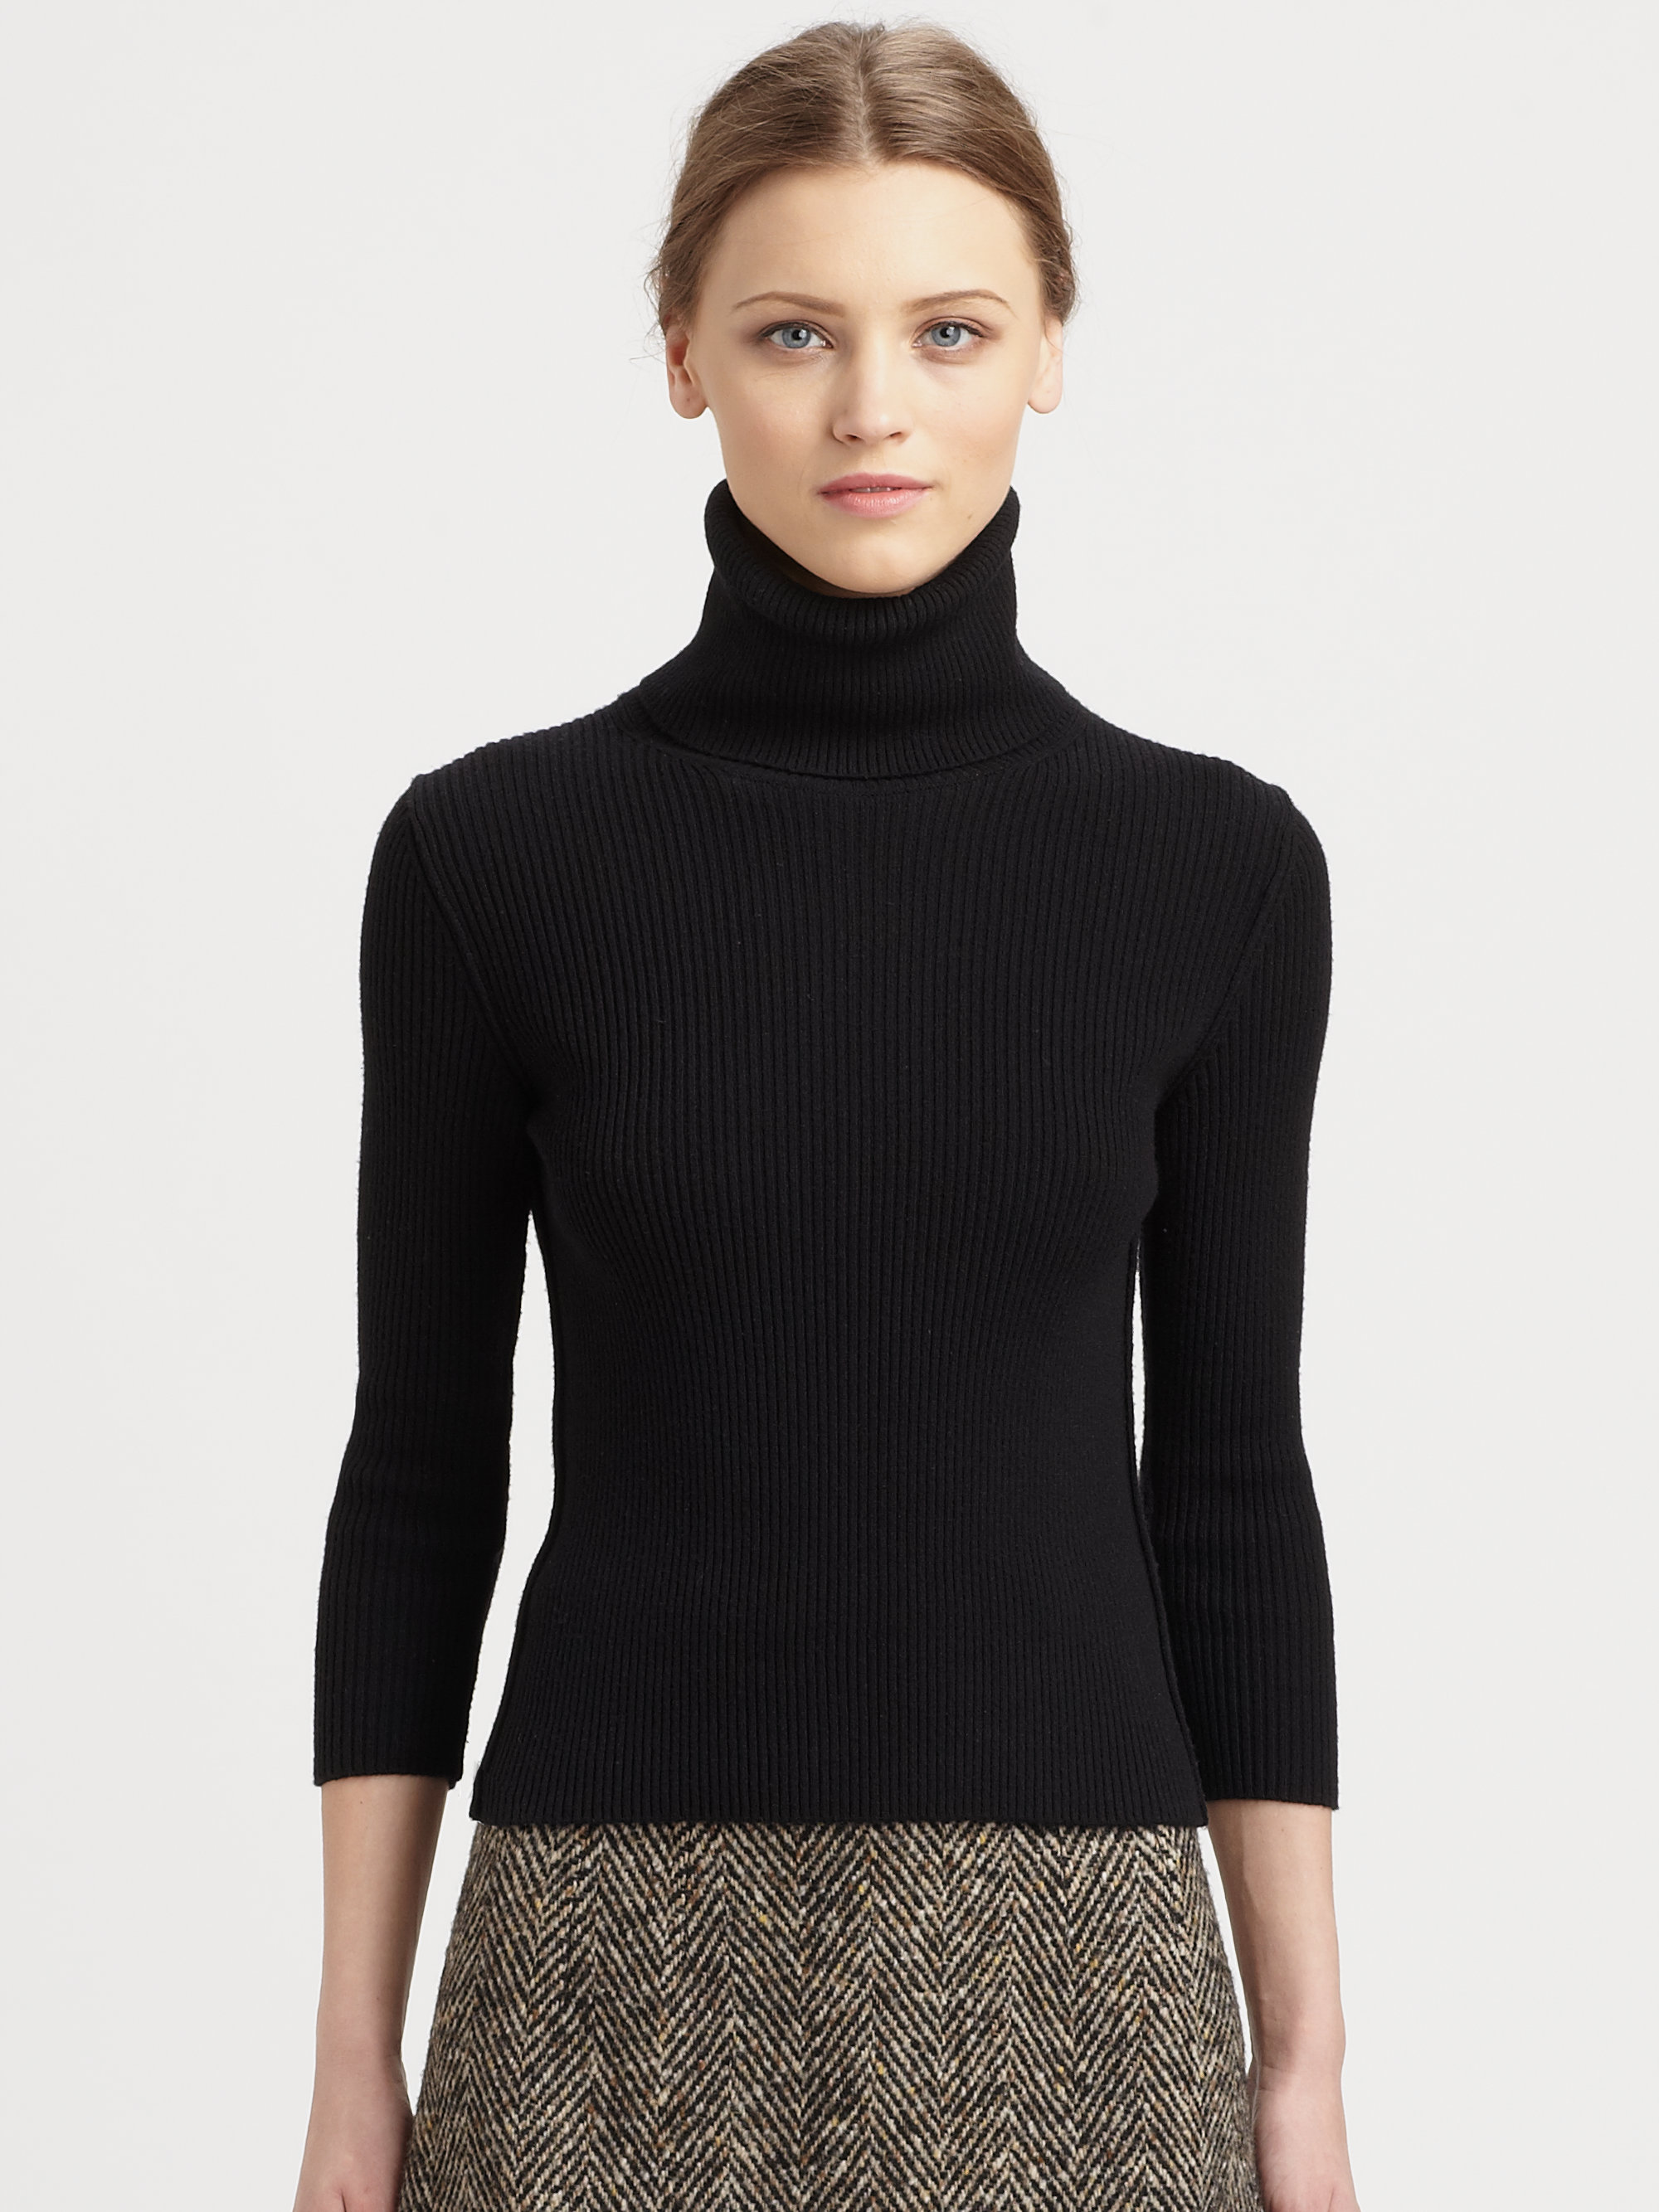 turtlenecks Office chic, cultured black or country loose – the turtleneck sweater can be both a fashion statement and a wardrobe hero. Find your new favourite neck warmer among our large selection of women's turtlenecks.